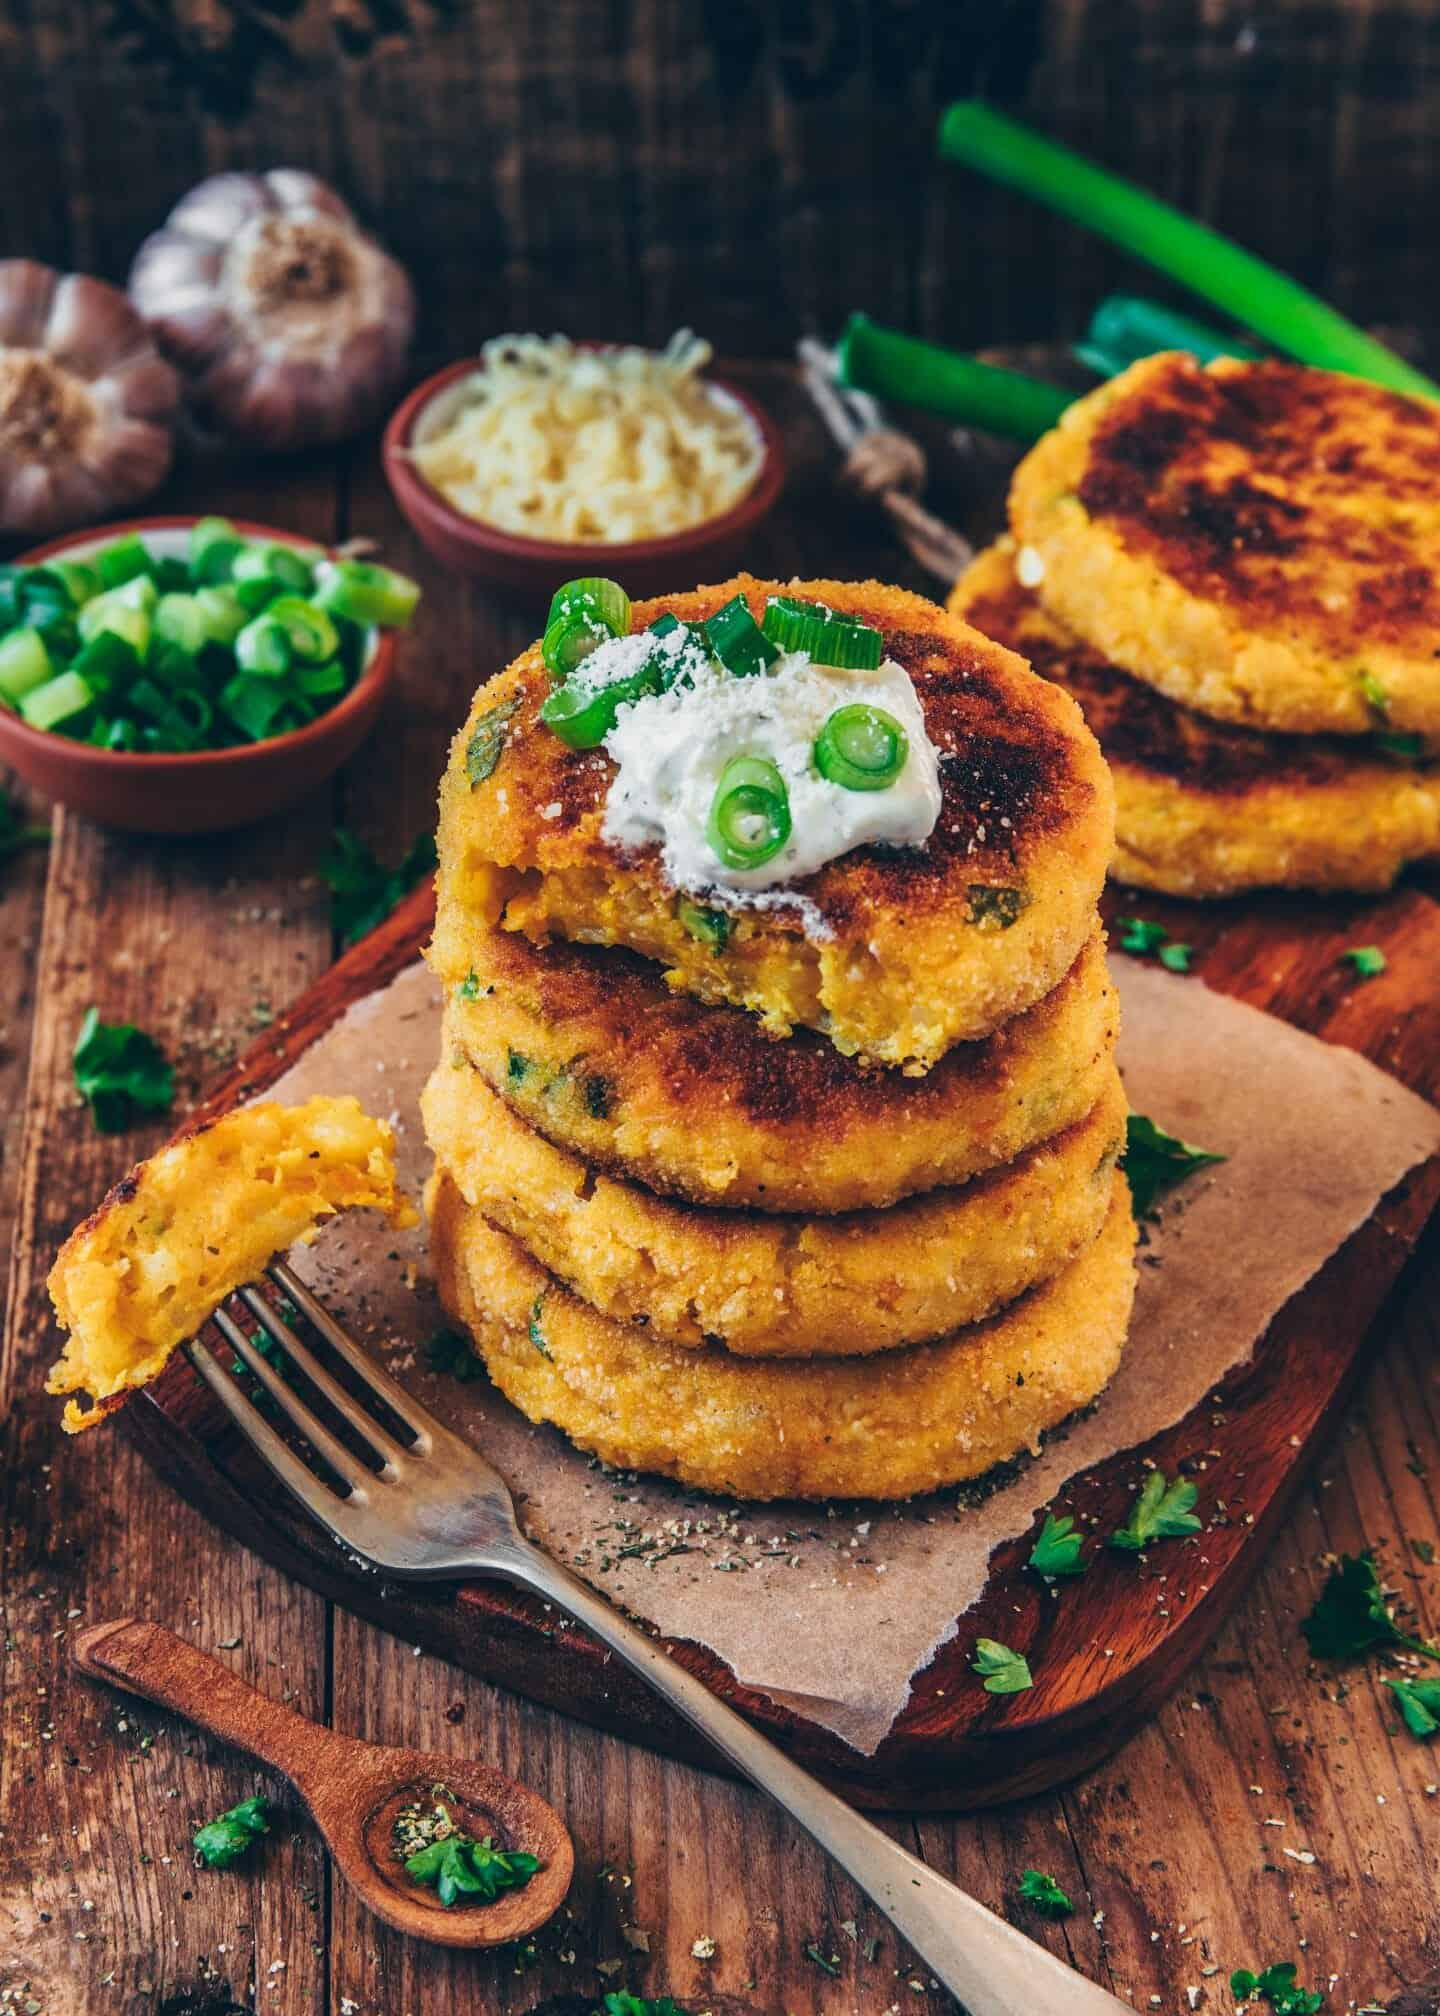 These cheesy vegan potato cakes are quick and very easy to make! It makes a simple and tasty side dish, dinner or lunch, and it's the best way to use up leftover potatoes!